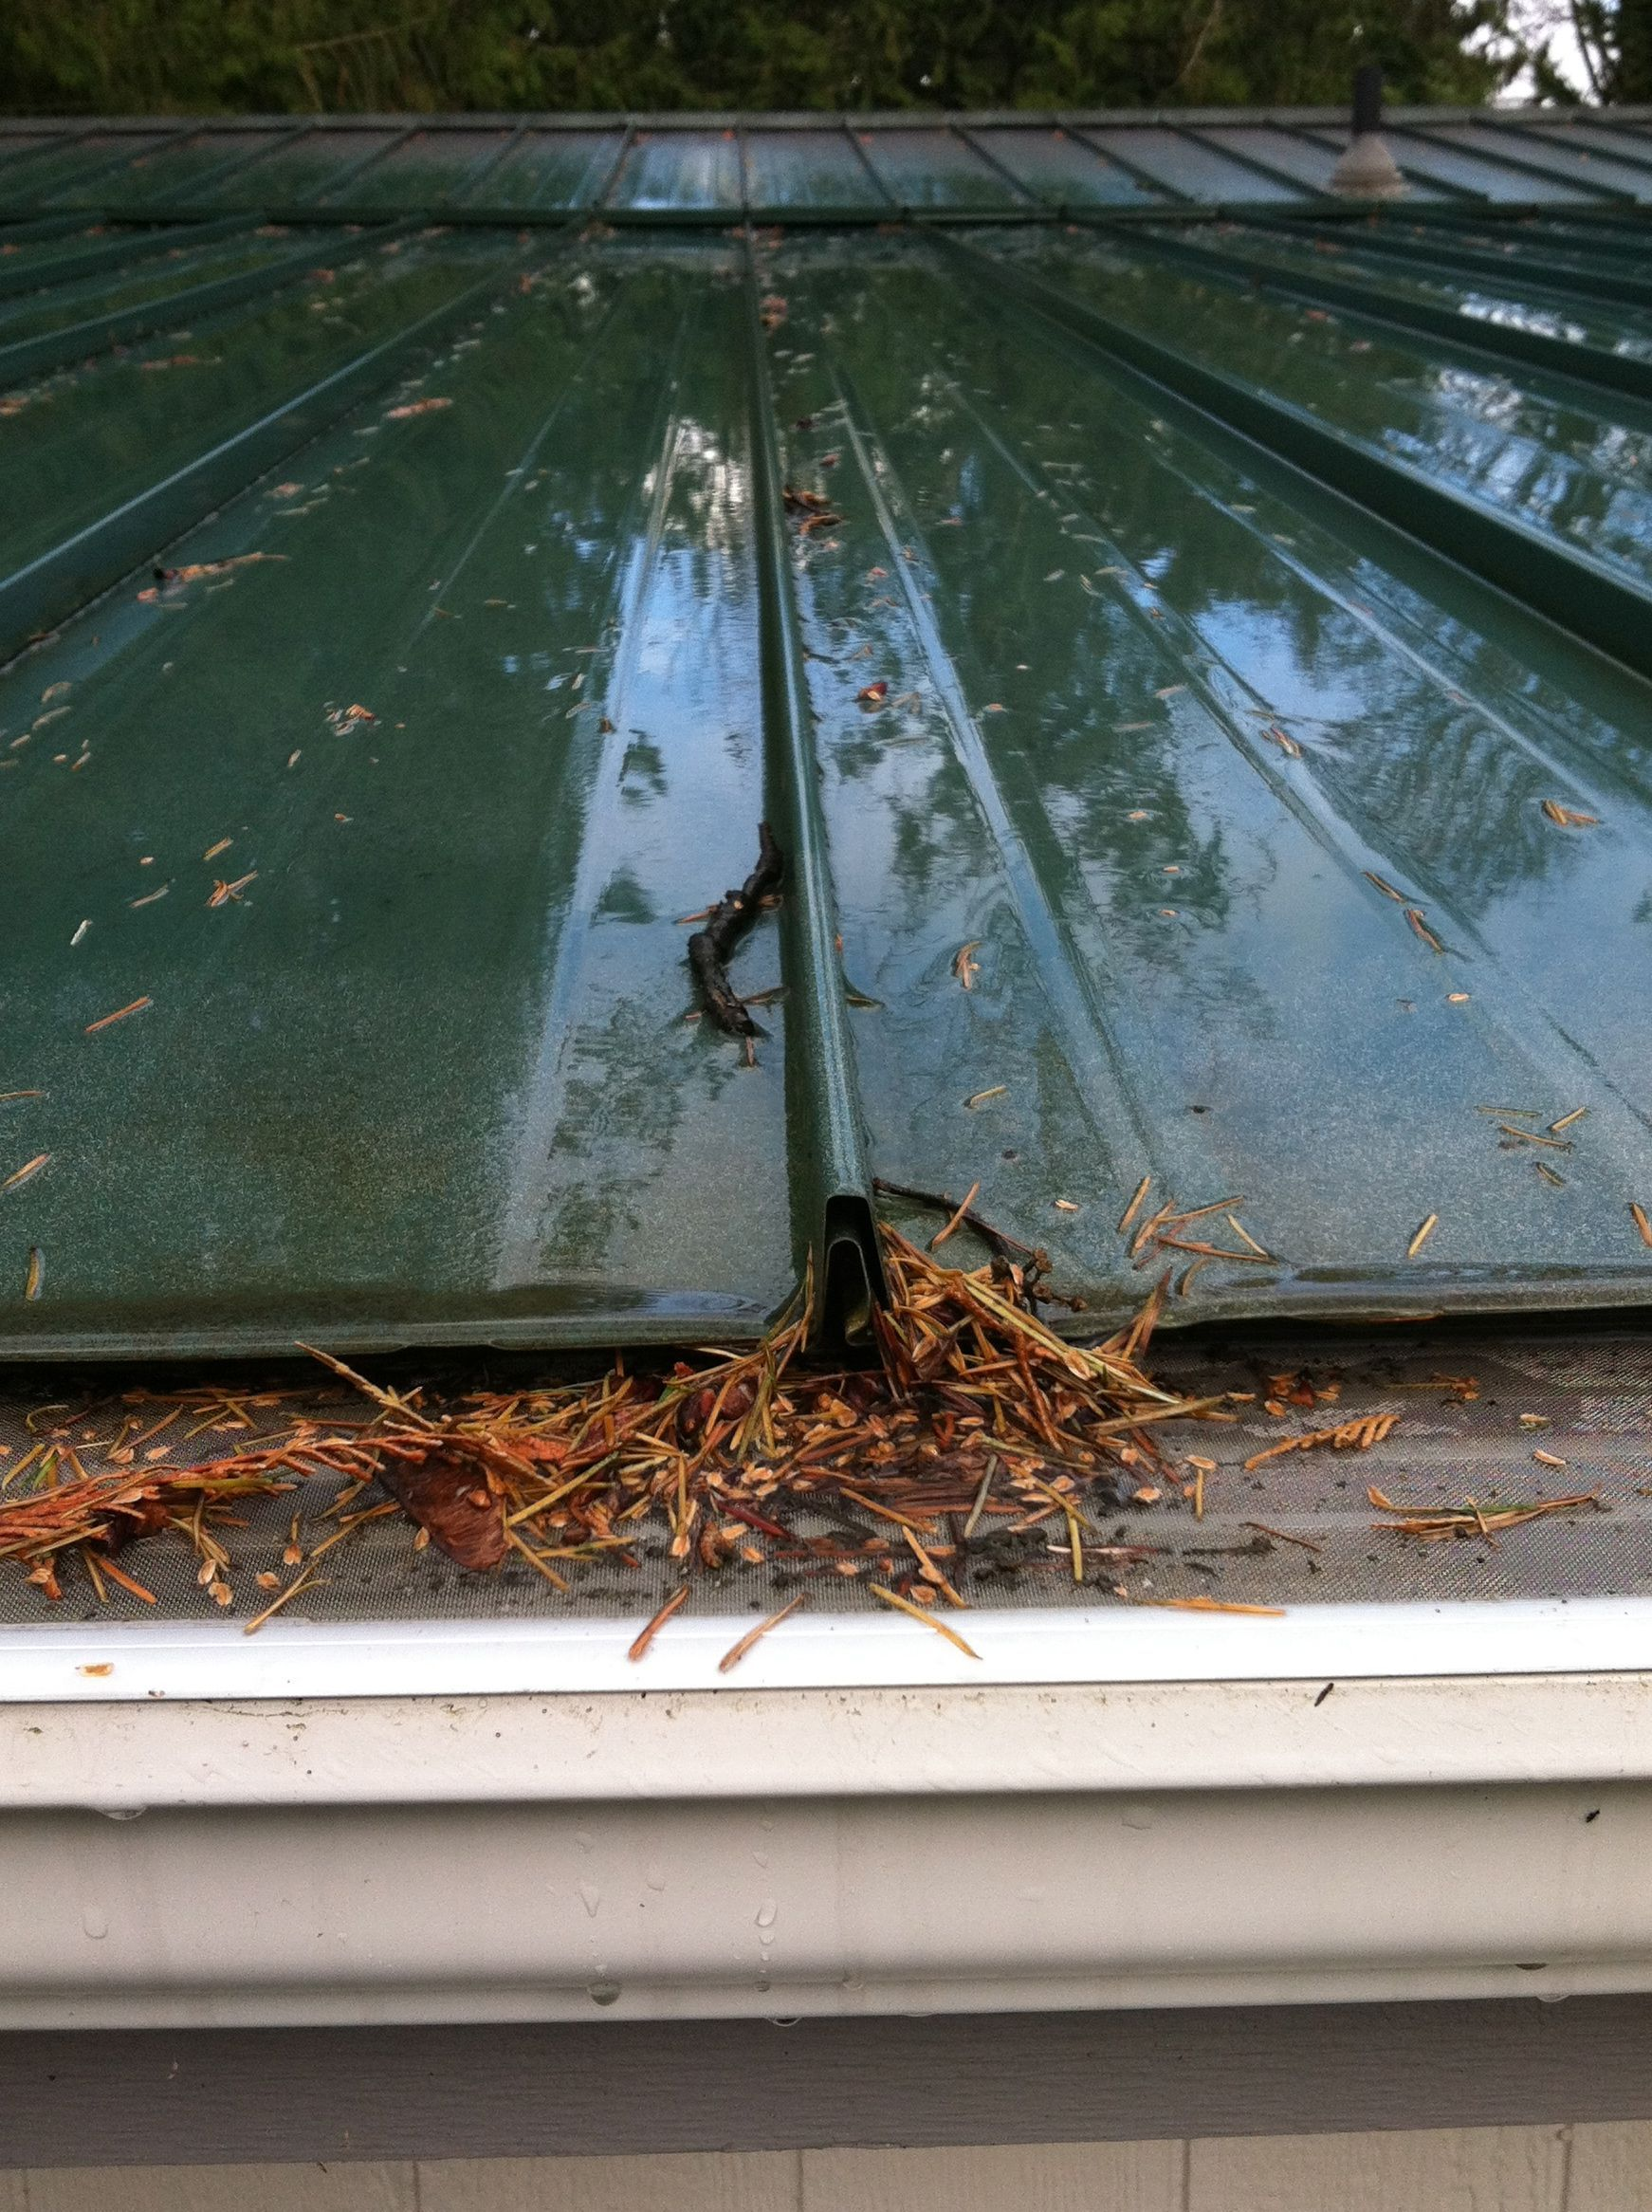 We Also Offer A Range Of Services Such As Gutter Repair Roof Treatments And Basic Gutter Downspout Tune Ups At Gutter Repair Leaf Filter Gutter Protection